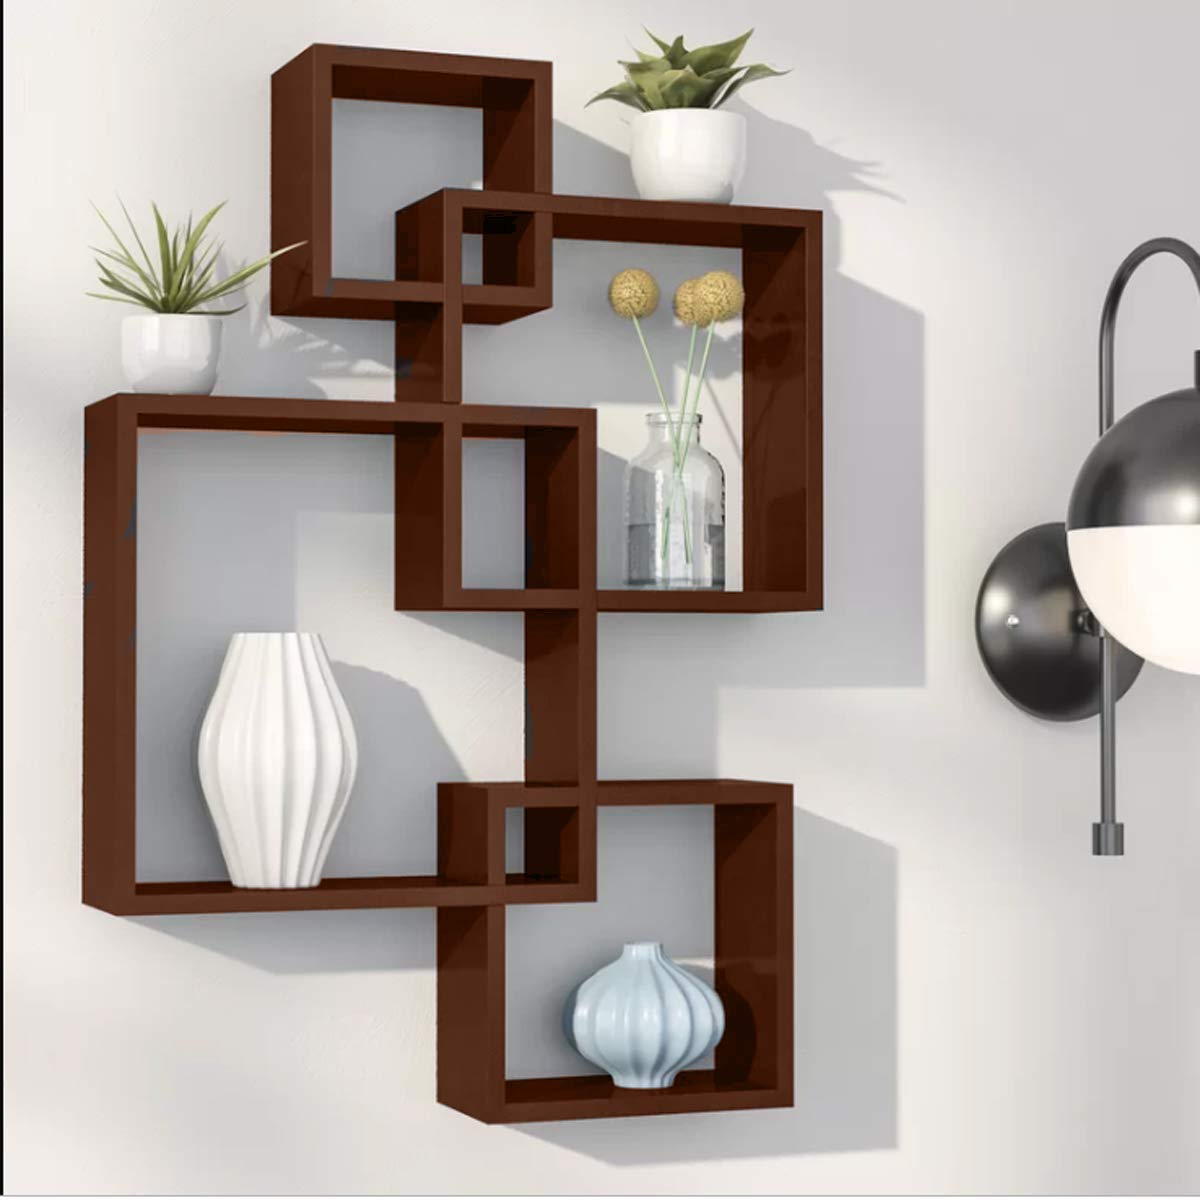 Dime Store Intersecting Wall Mount Wall Shelf Four Wall Shelves For Living Room Standard Elegant Brown Buy Online In Guernsey At Guernsey Desertcart Com Productid 183171866